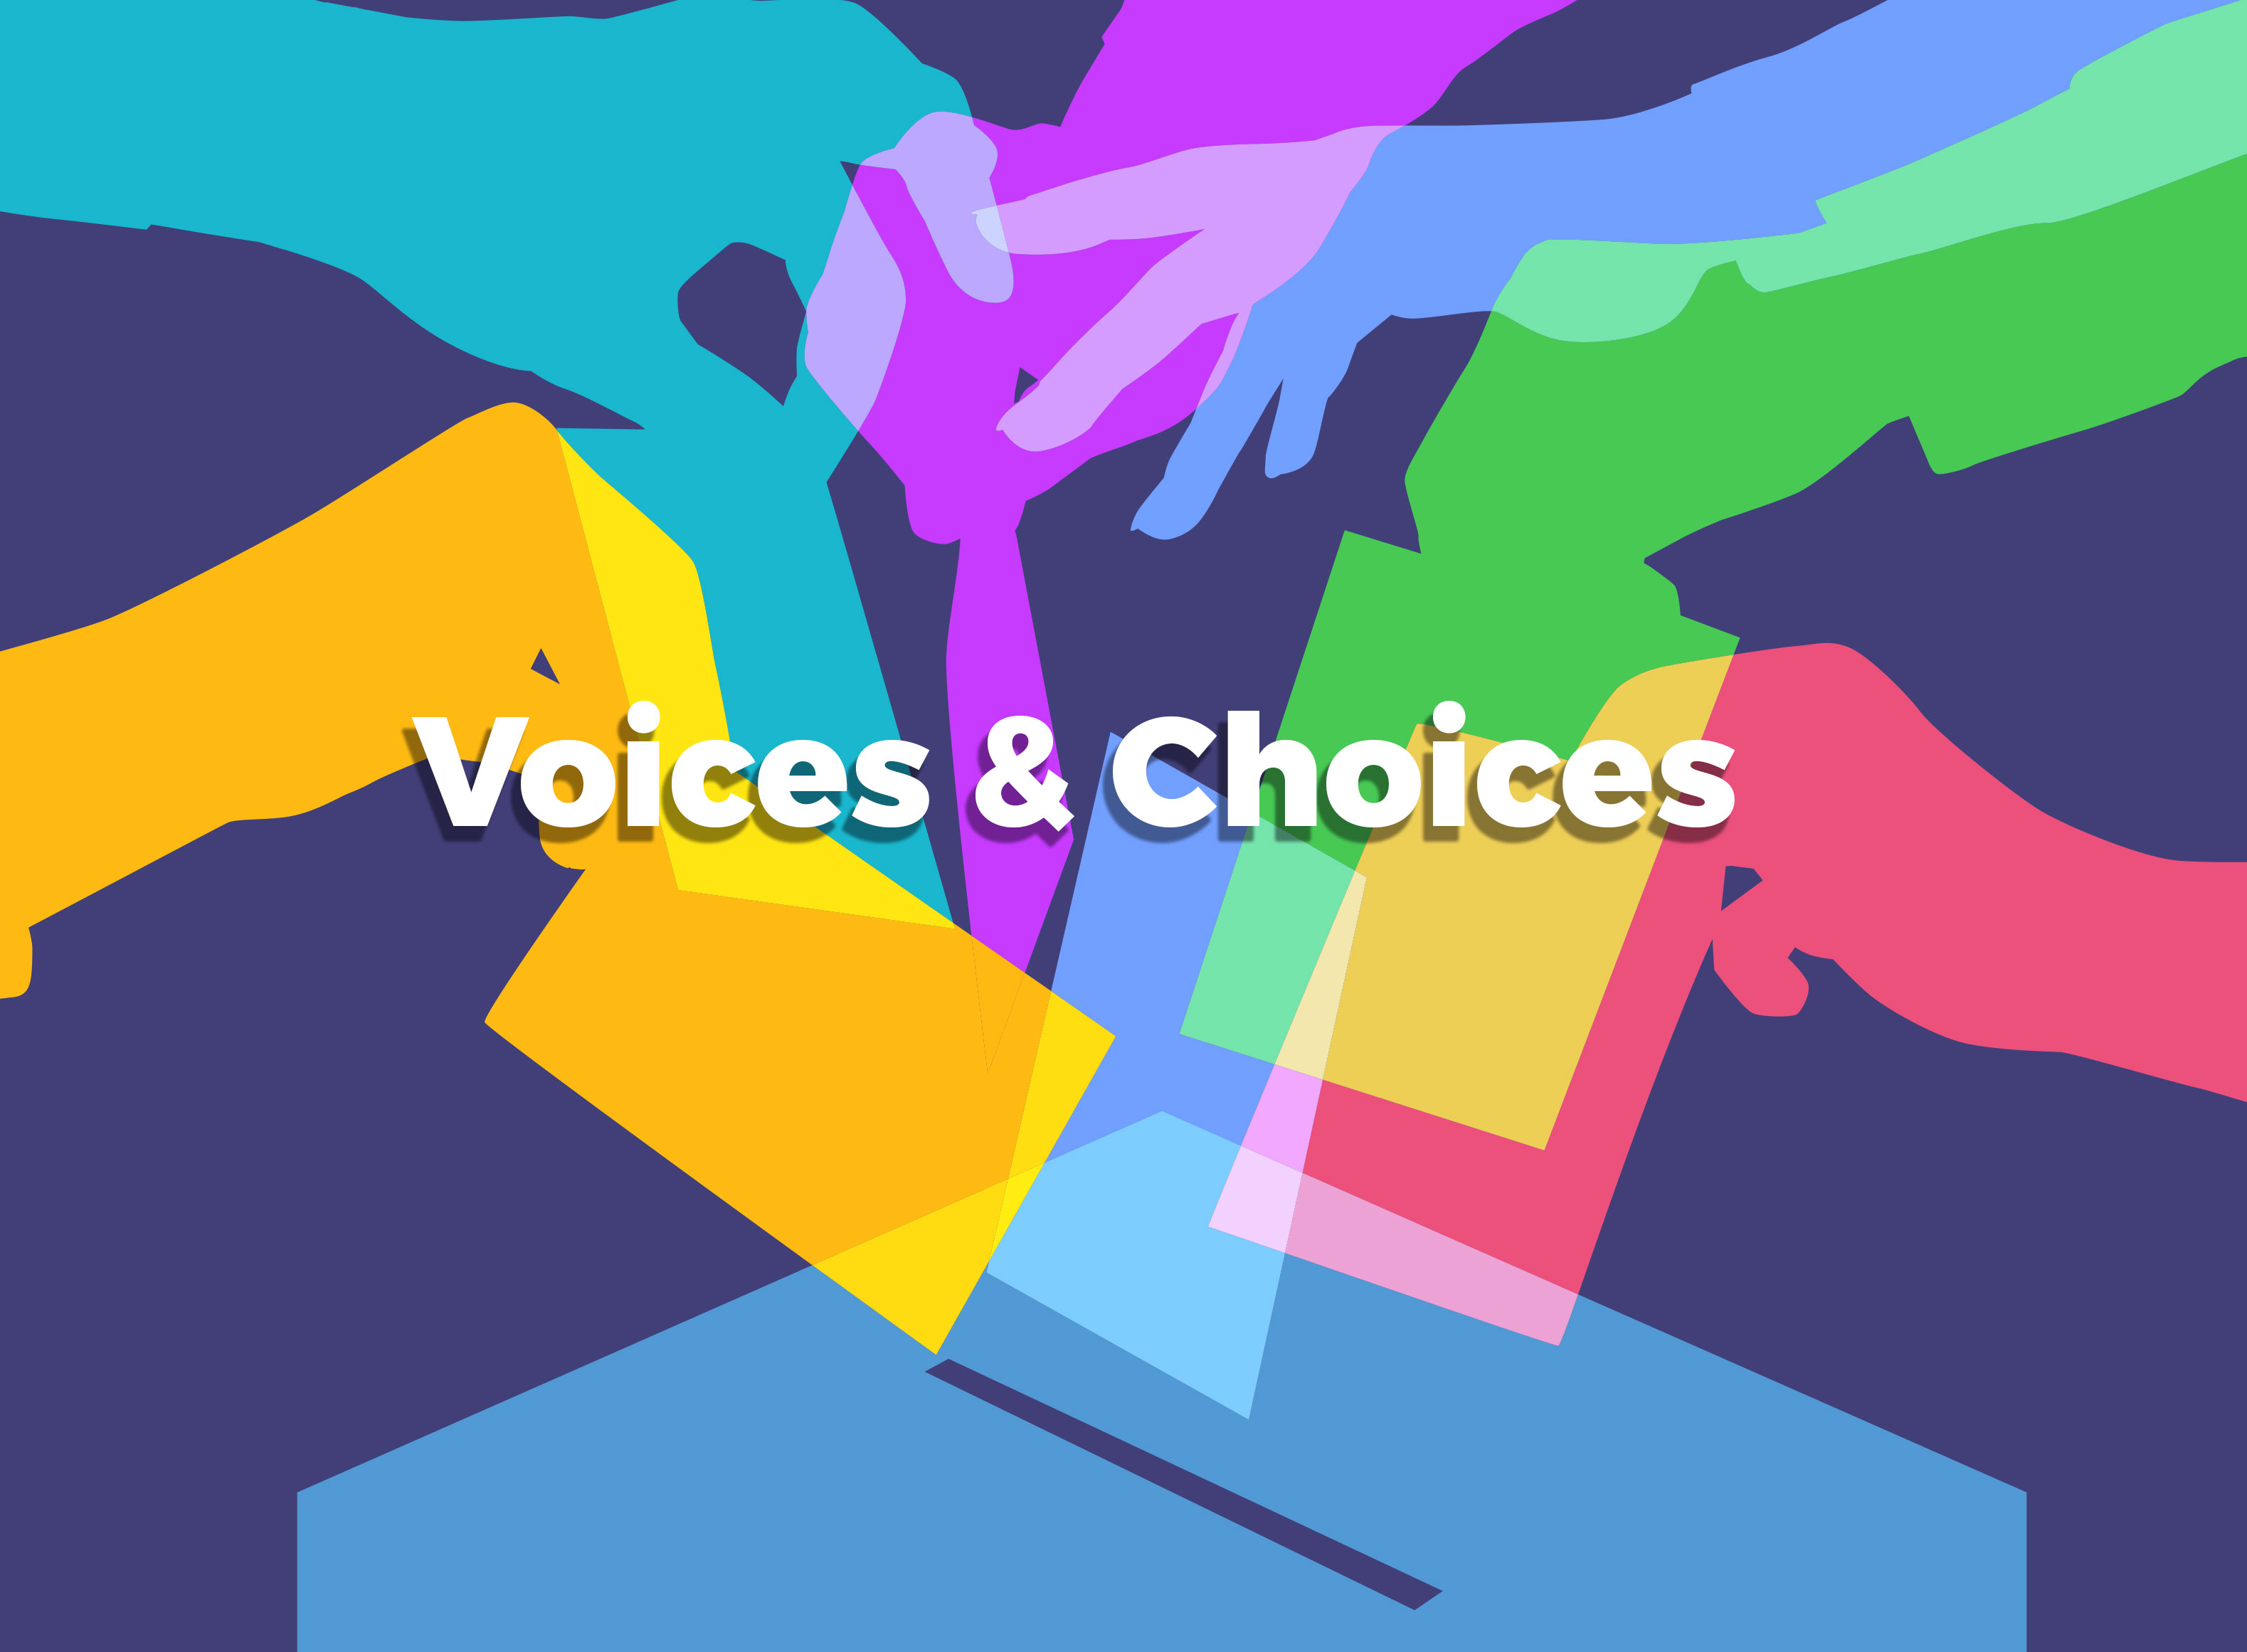 Voices & Choices